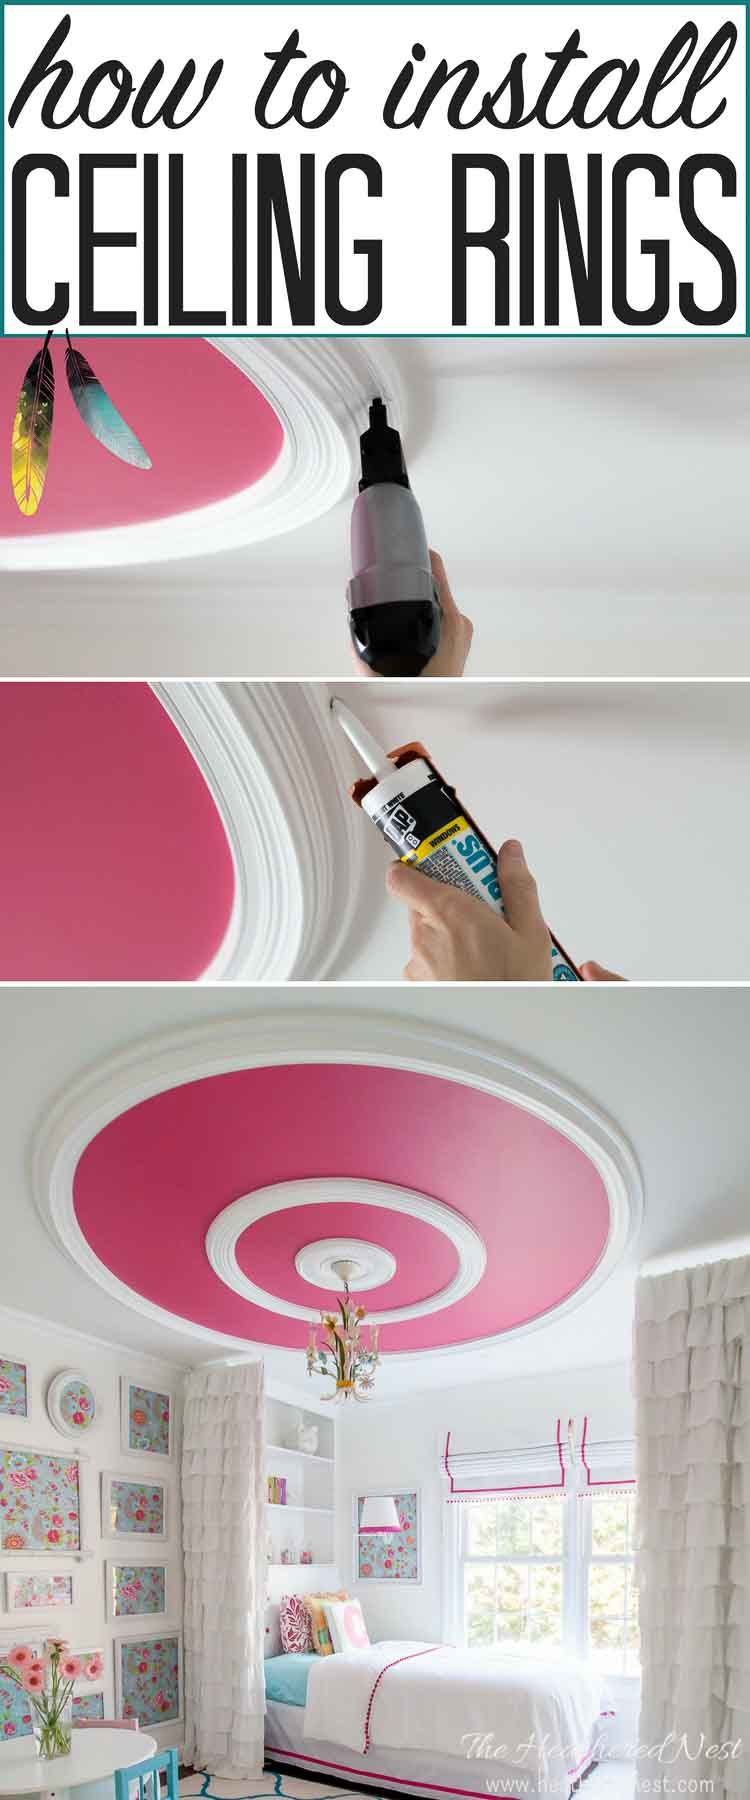 Info's : GREAT tutorial and ceiling design ideas!! How to install ceiling rings, or round ceiling molding for a high end look on a small budget! THIS IS GORGEOUS! I may try this DIY project :)